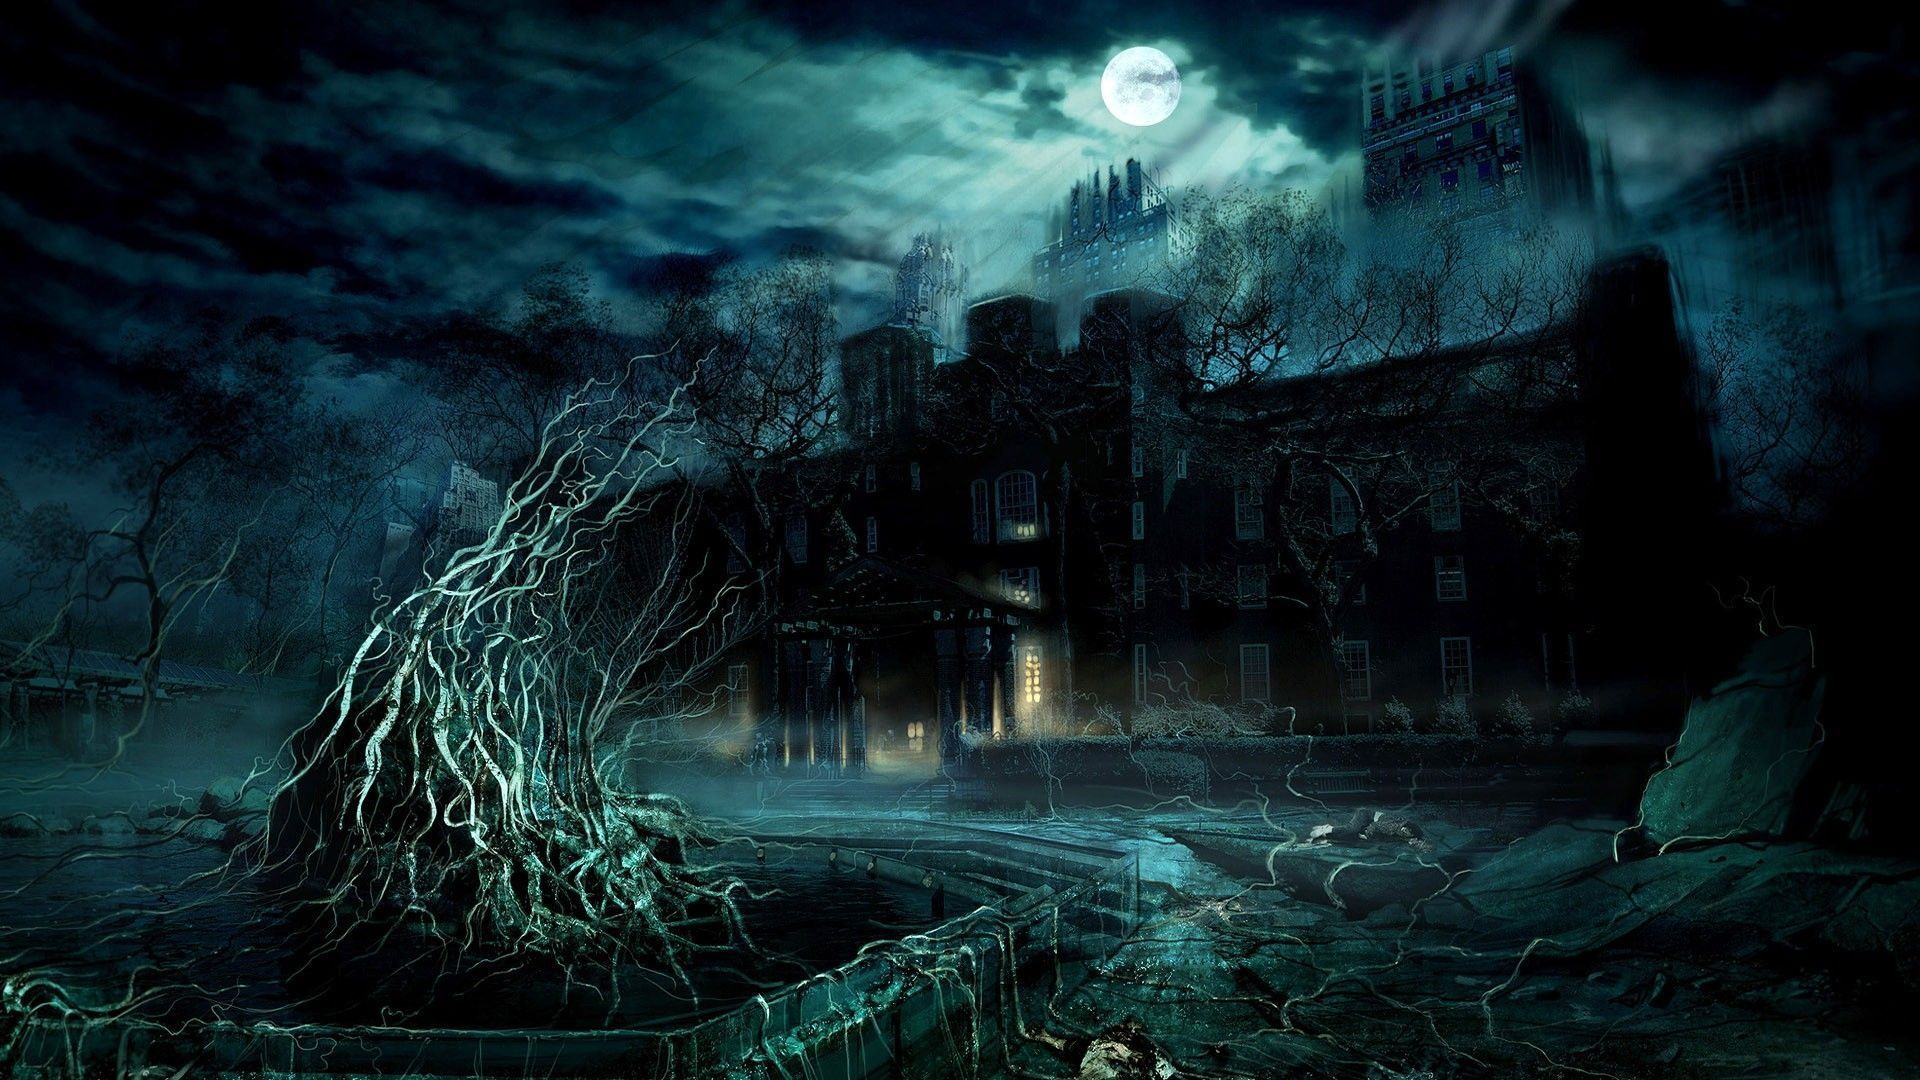 Hd Wallpapers For Pc 1080p Free Download Archives Free Desktop Gothic Wallpaper Dark Wallpaper Fantasy Places